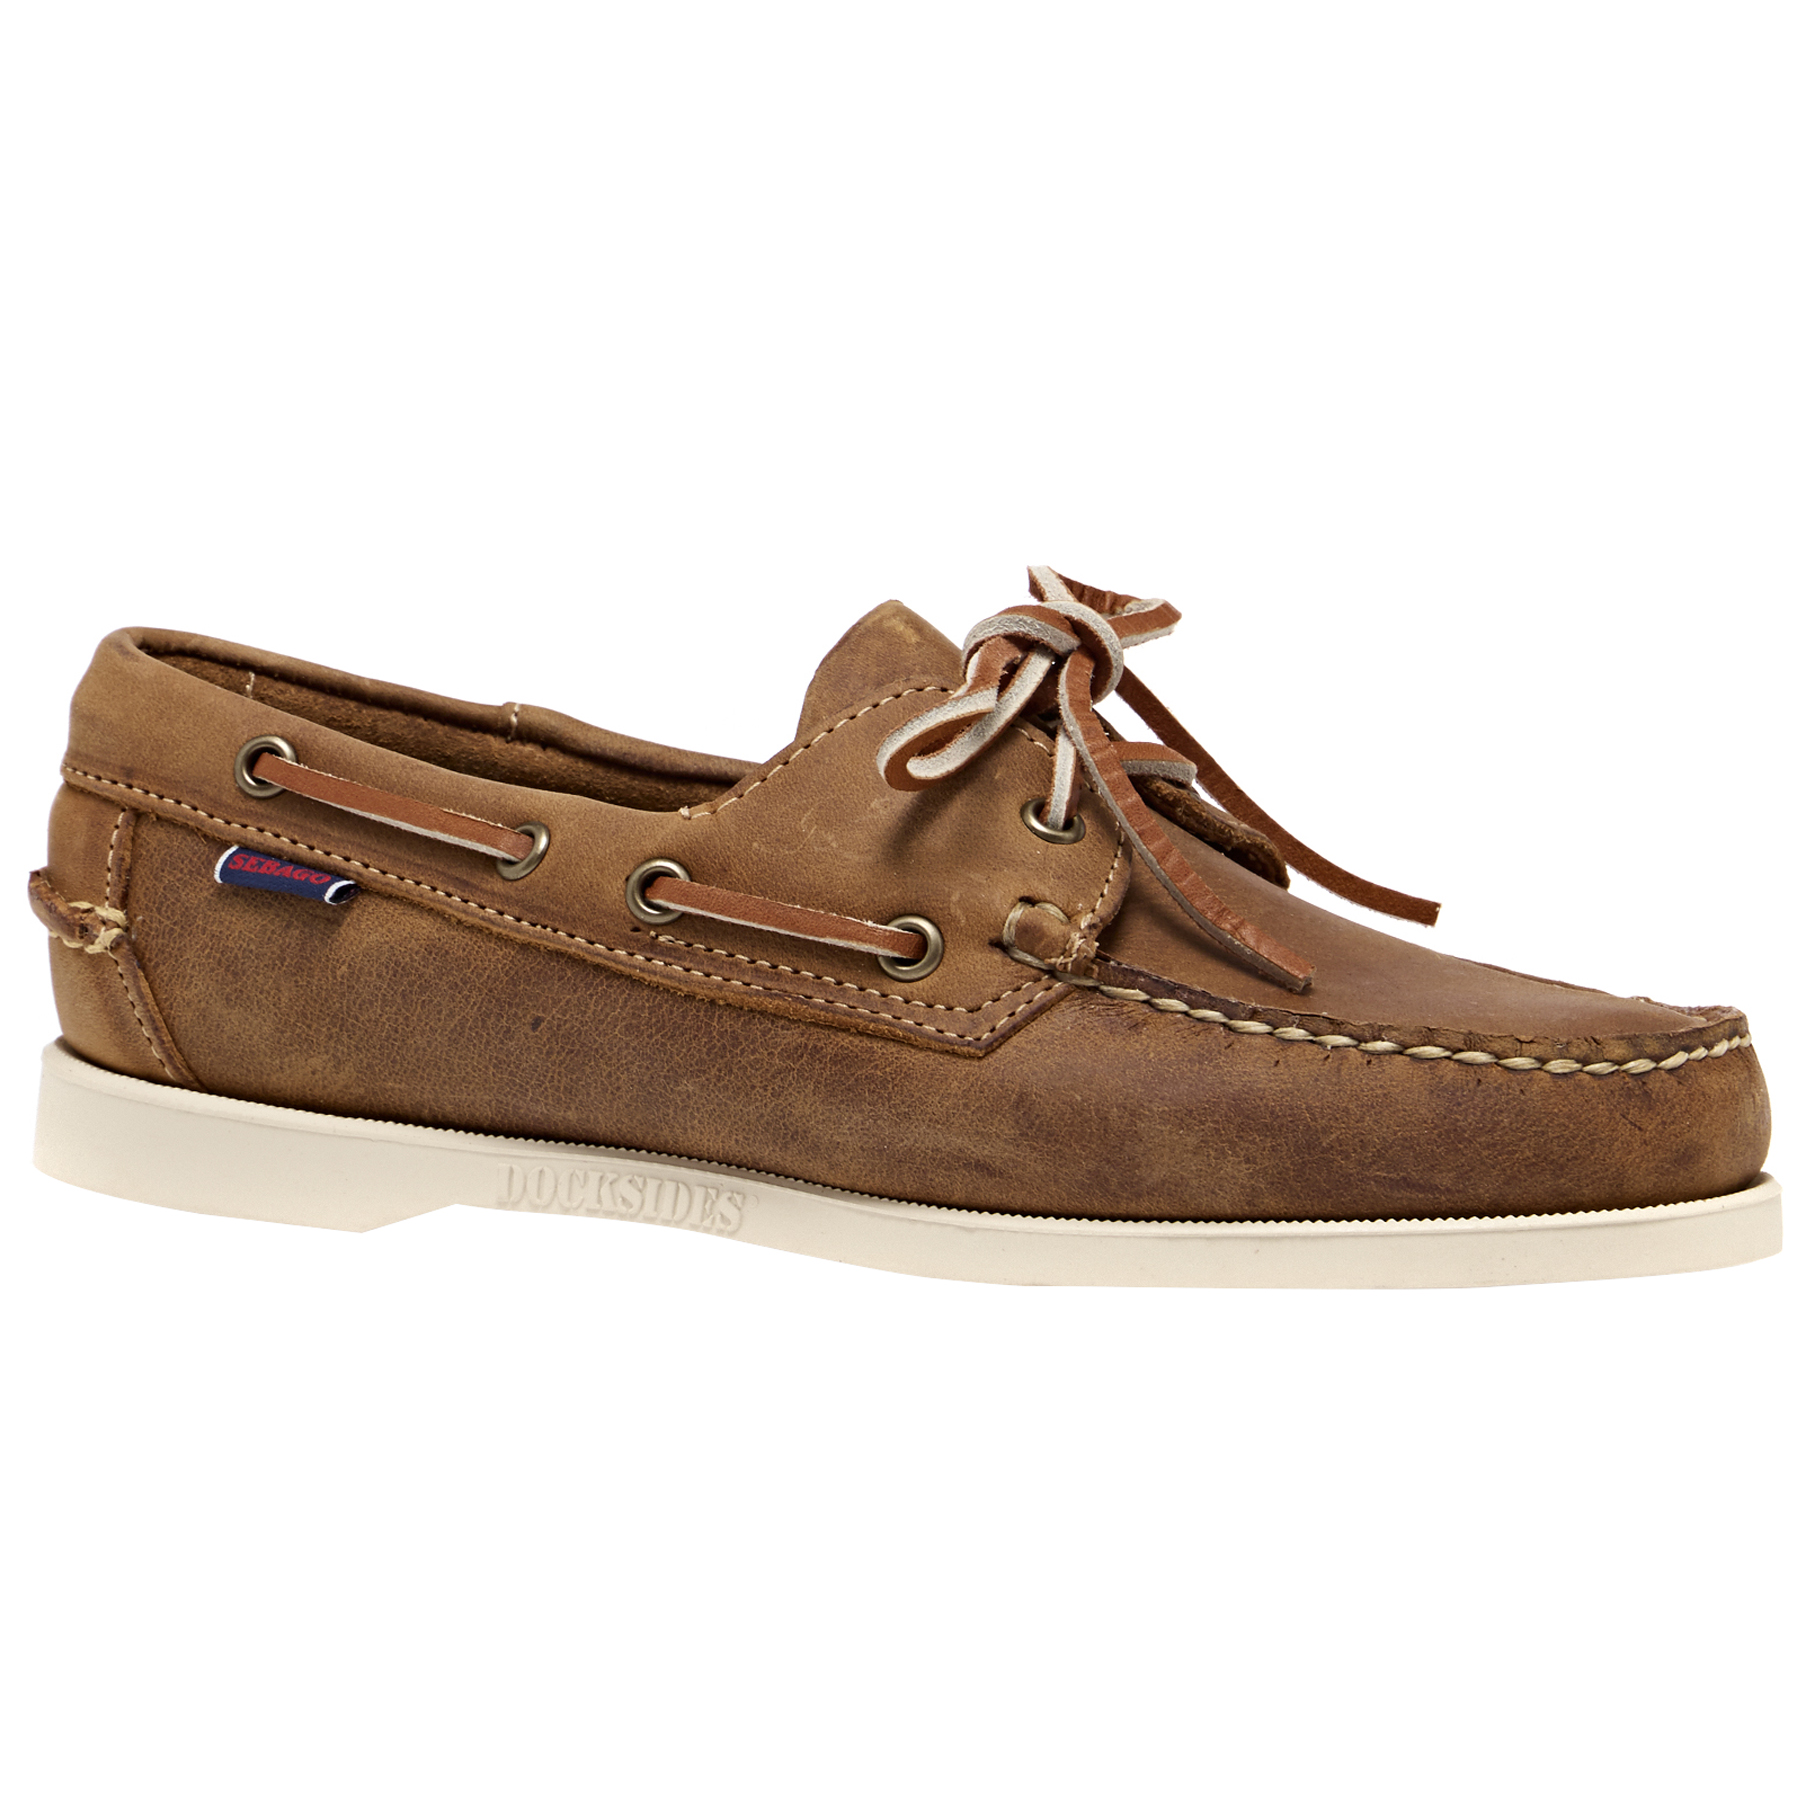 Sebago Dockside Portland Leather Dress Shoes available from Blackleaf